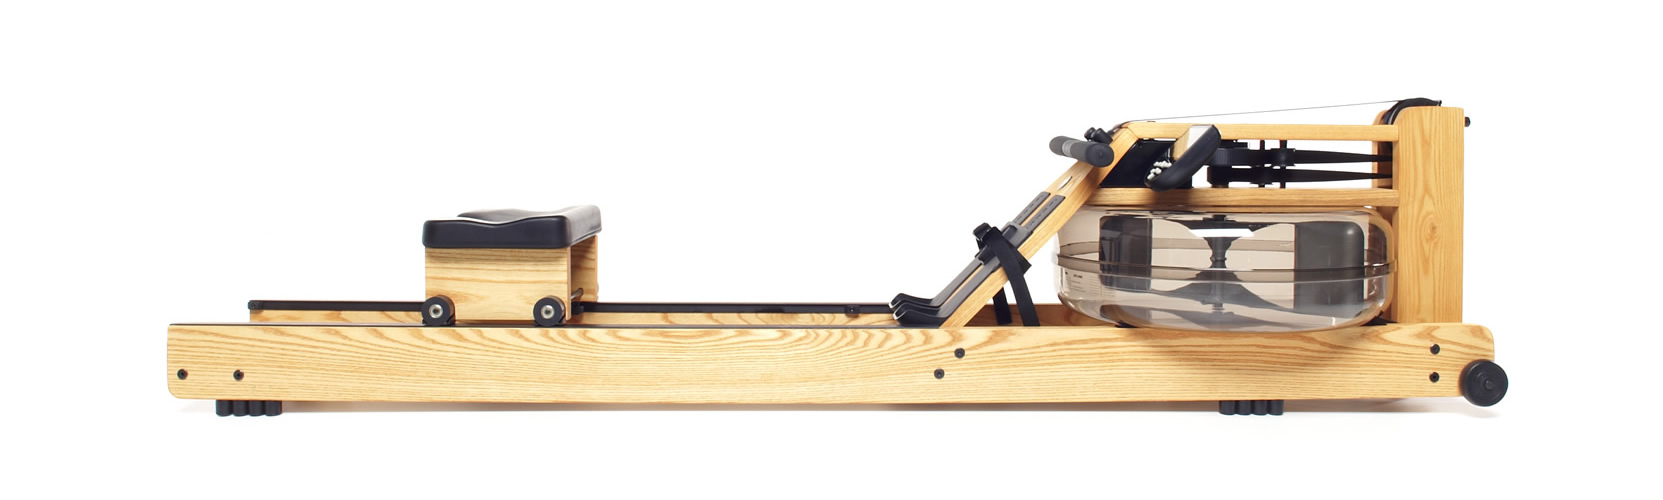 Water Rower Indoor Fitness Rowing Machine, Oar Board, Whitehall Rowing and Sail, Canada